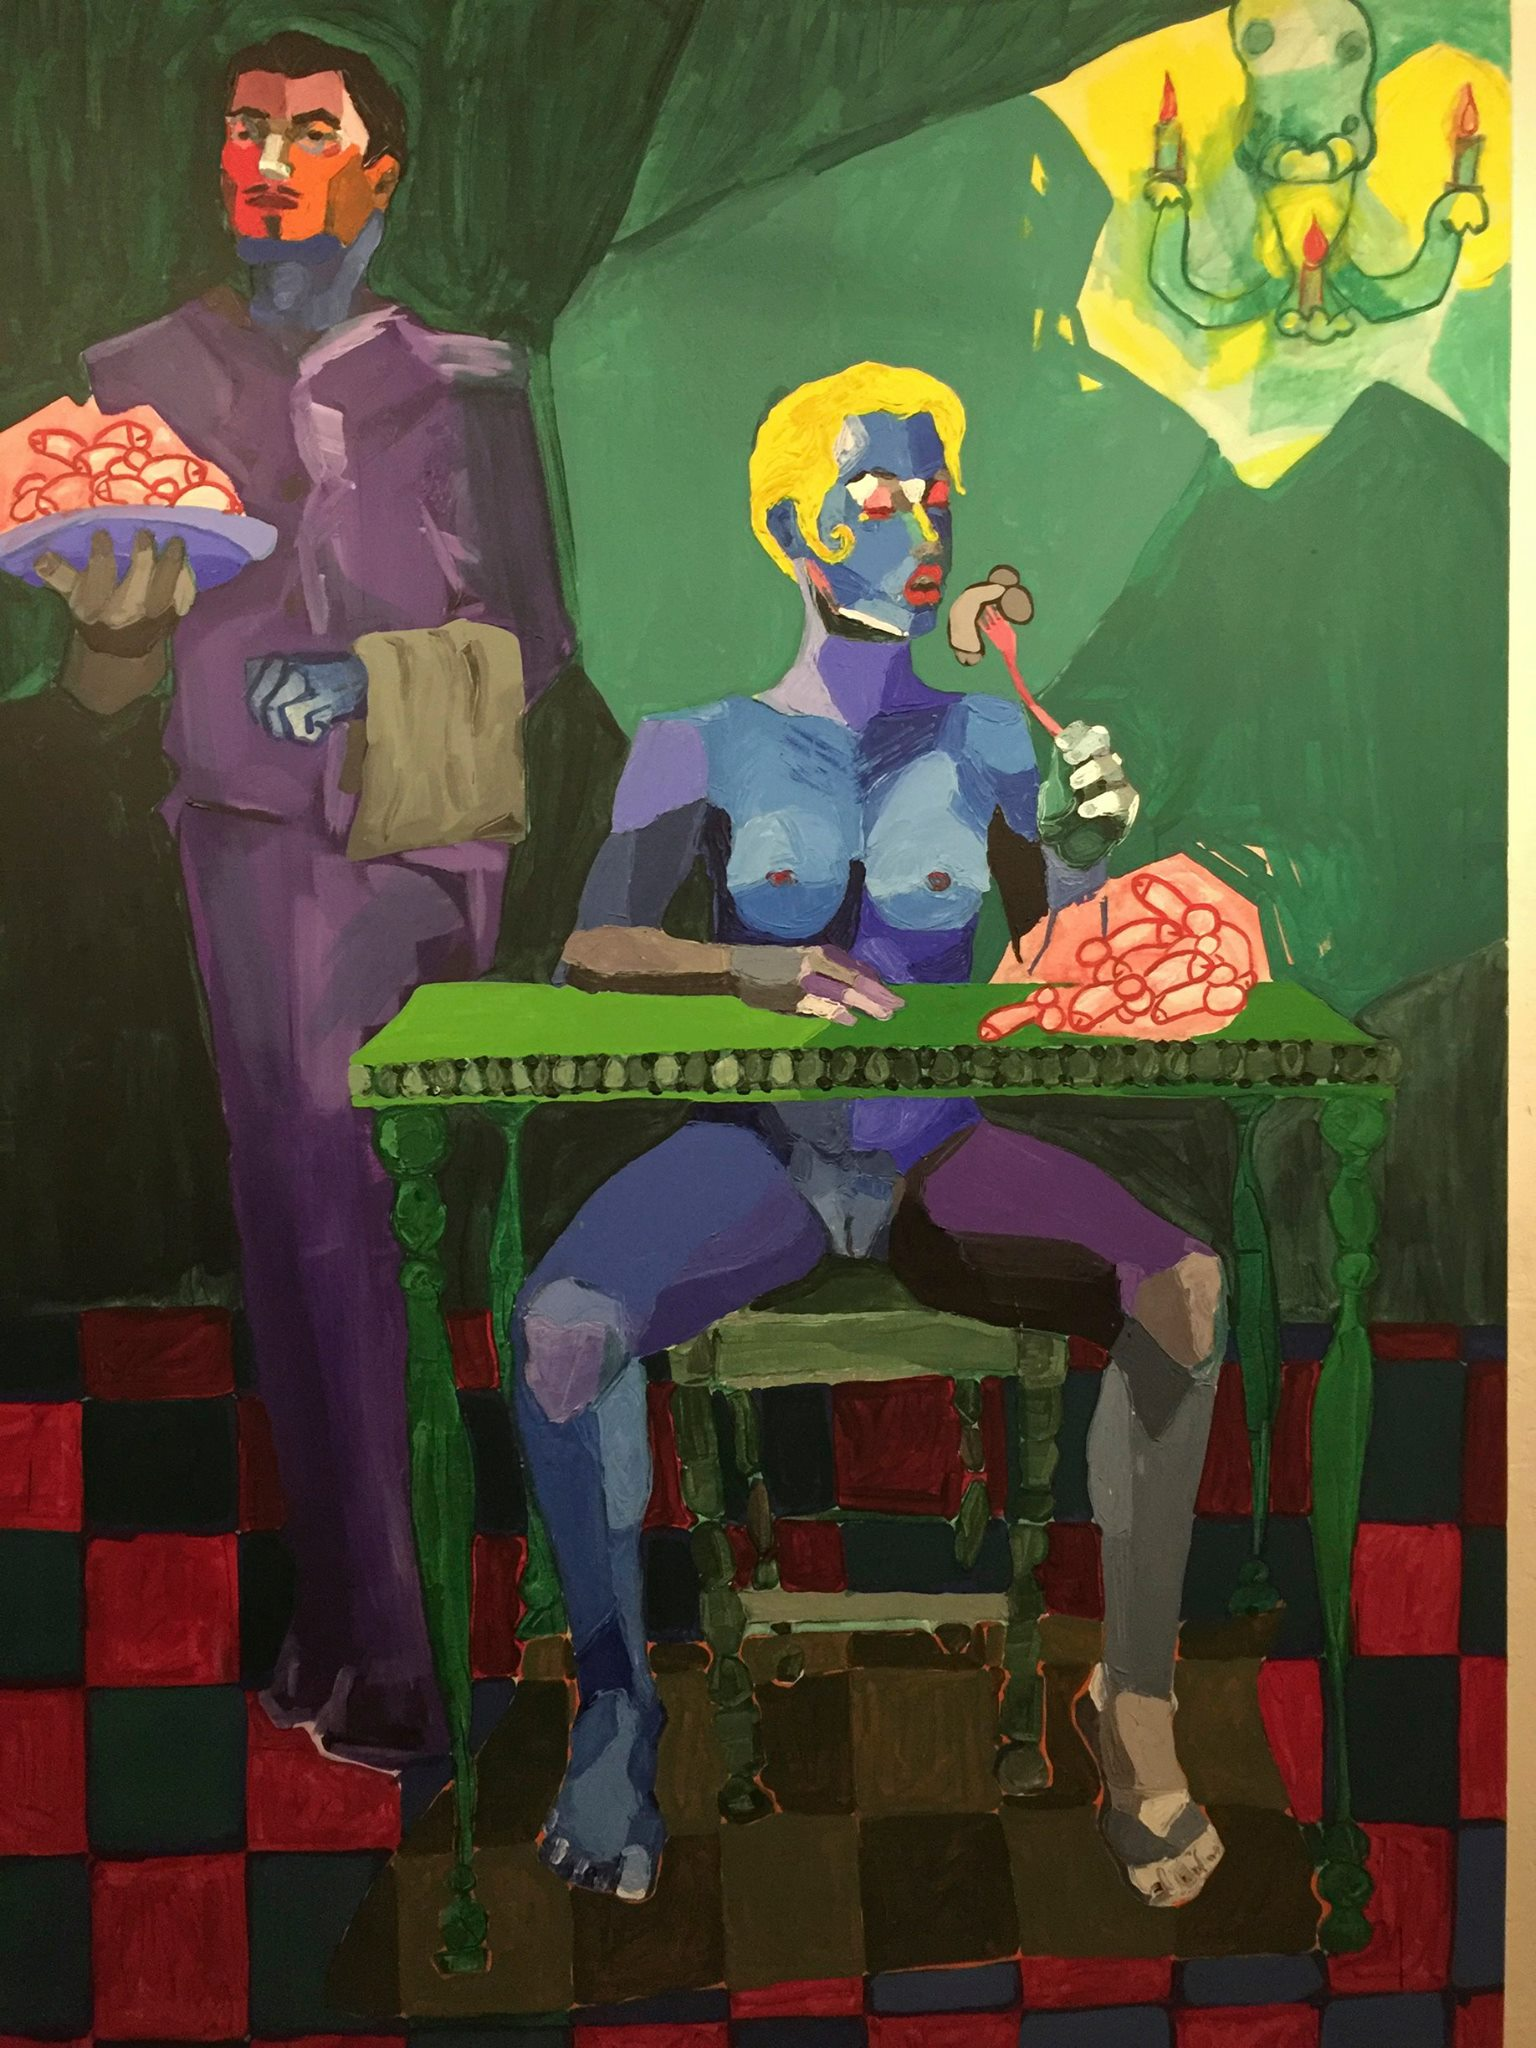 Cuban art is striking, colorful and blunt.